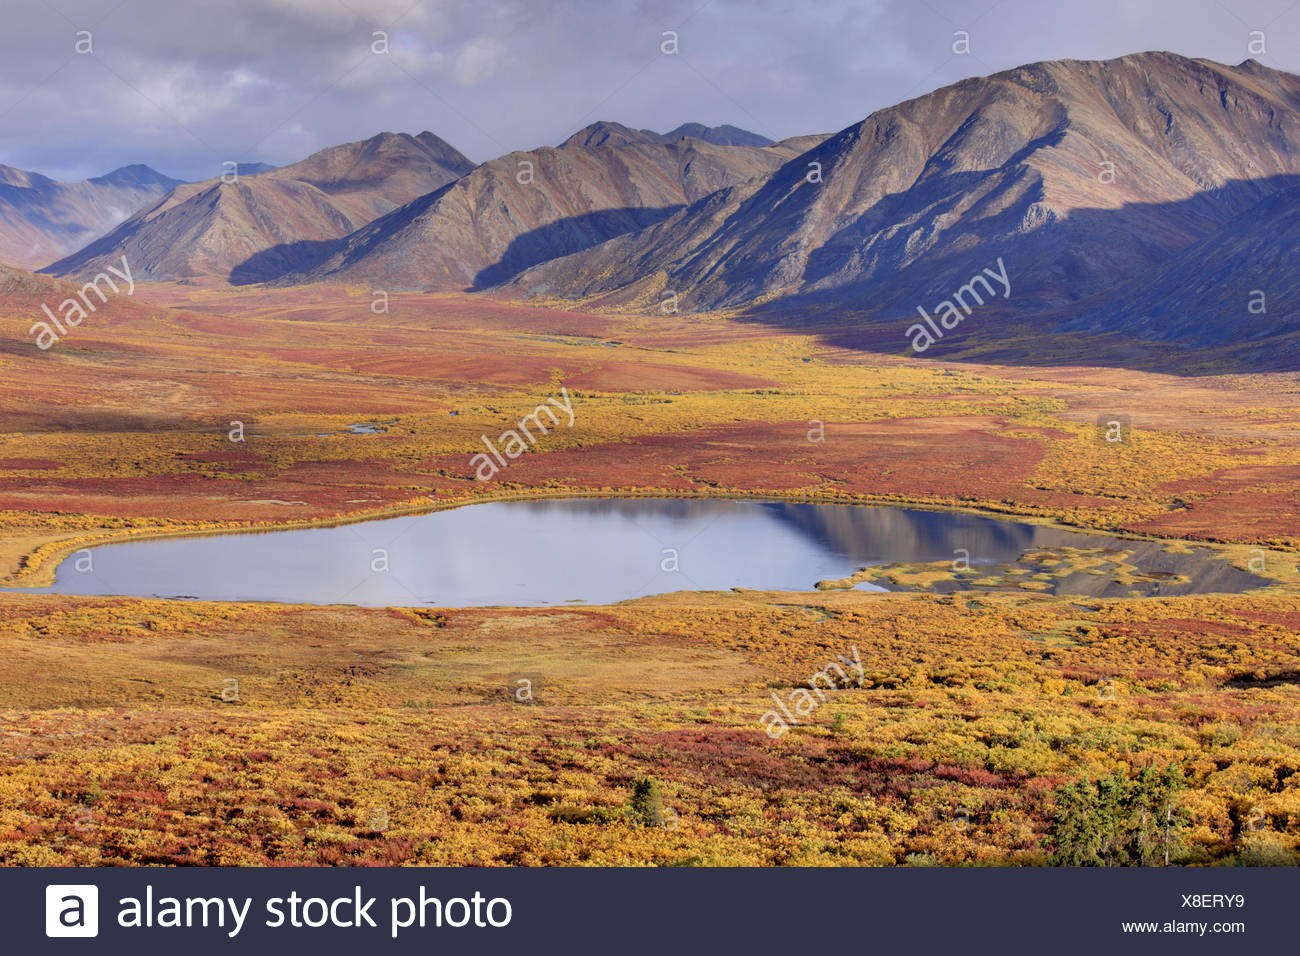 North America, Canada, Yukon territory, Yukon Territory, Dempster highway, Ogilvie Mountains, Tombstone Territorial park, lake, autumn, Stock Photo